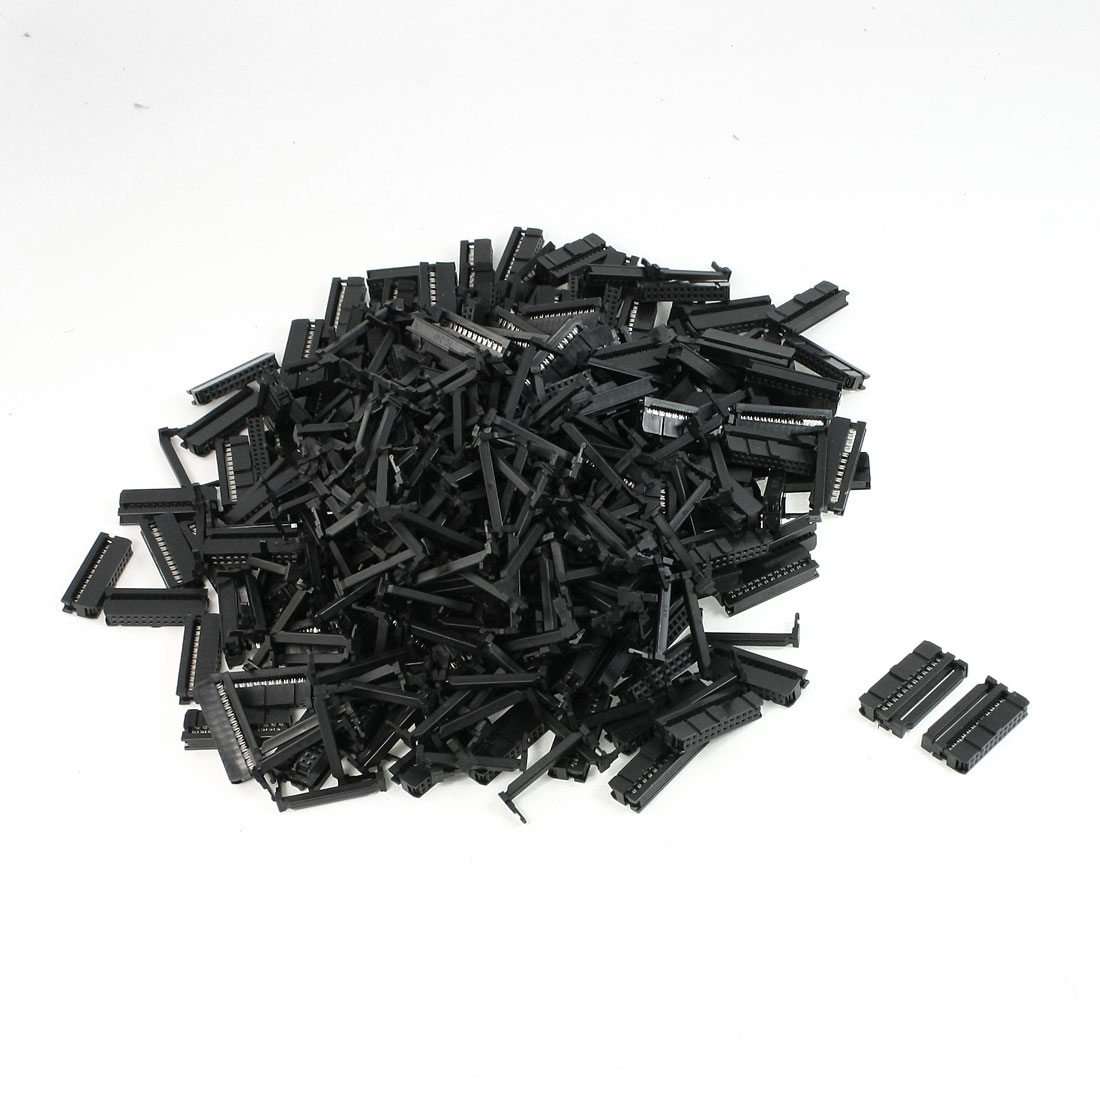 200 Pcs FC1-24P Flat Ribbon Cable 2 Row 24 Pin IDC Socket Connector Black